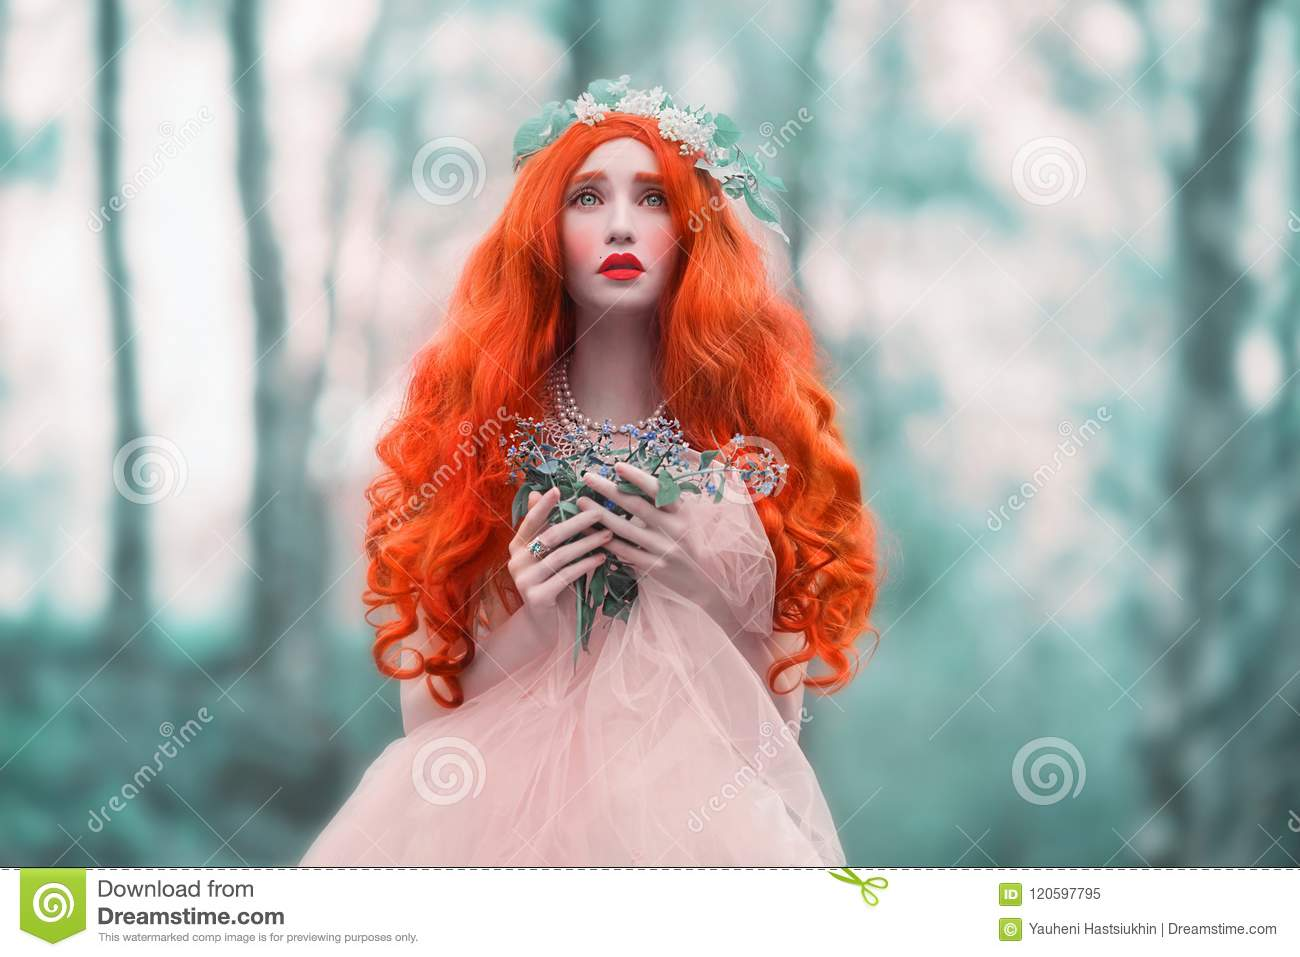 Young frightened woman looks like a doll in mystery world with very long hair in pink dress on blue background. Beautiful girl wit